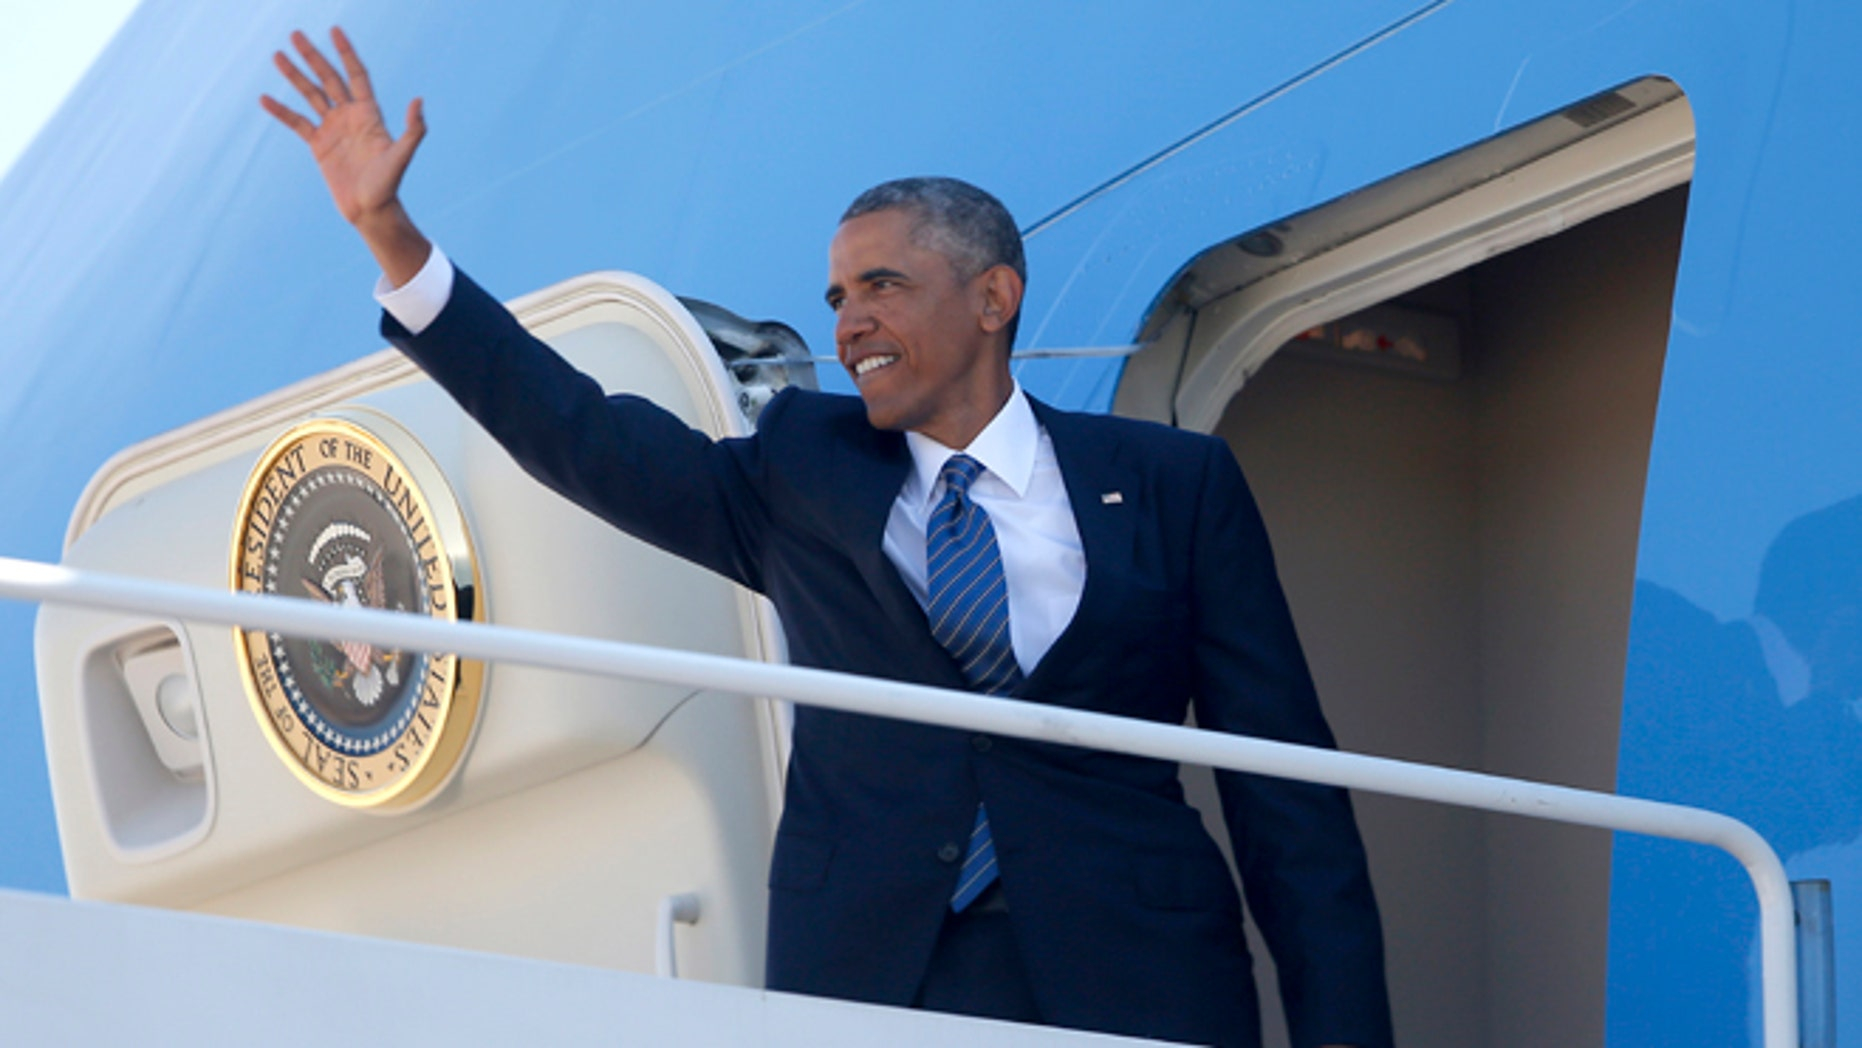 President Obama waves as he boards Air Force One at Andrews Air Force Base, Md., Tuesday, Aug. 26, 2014.